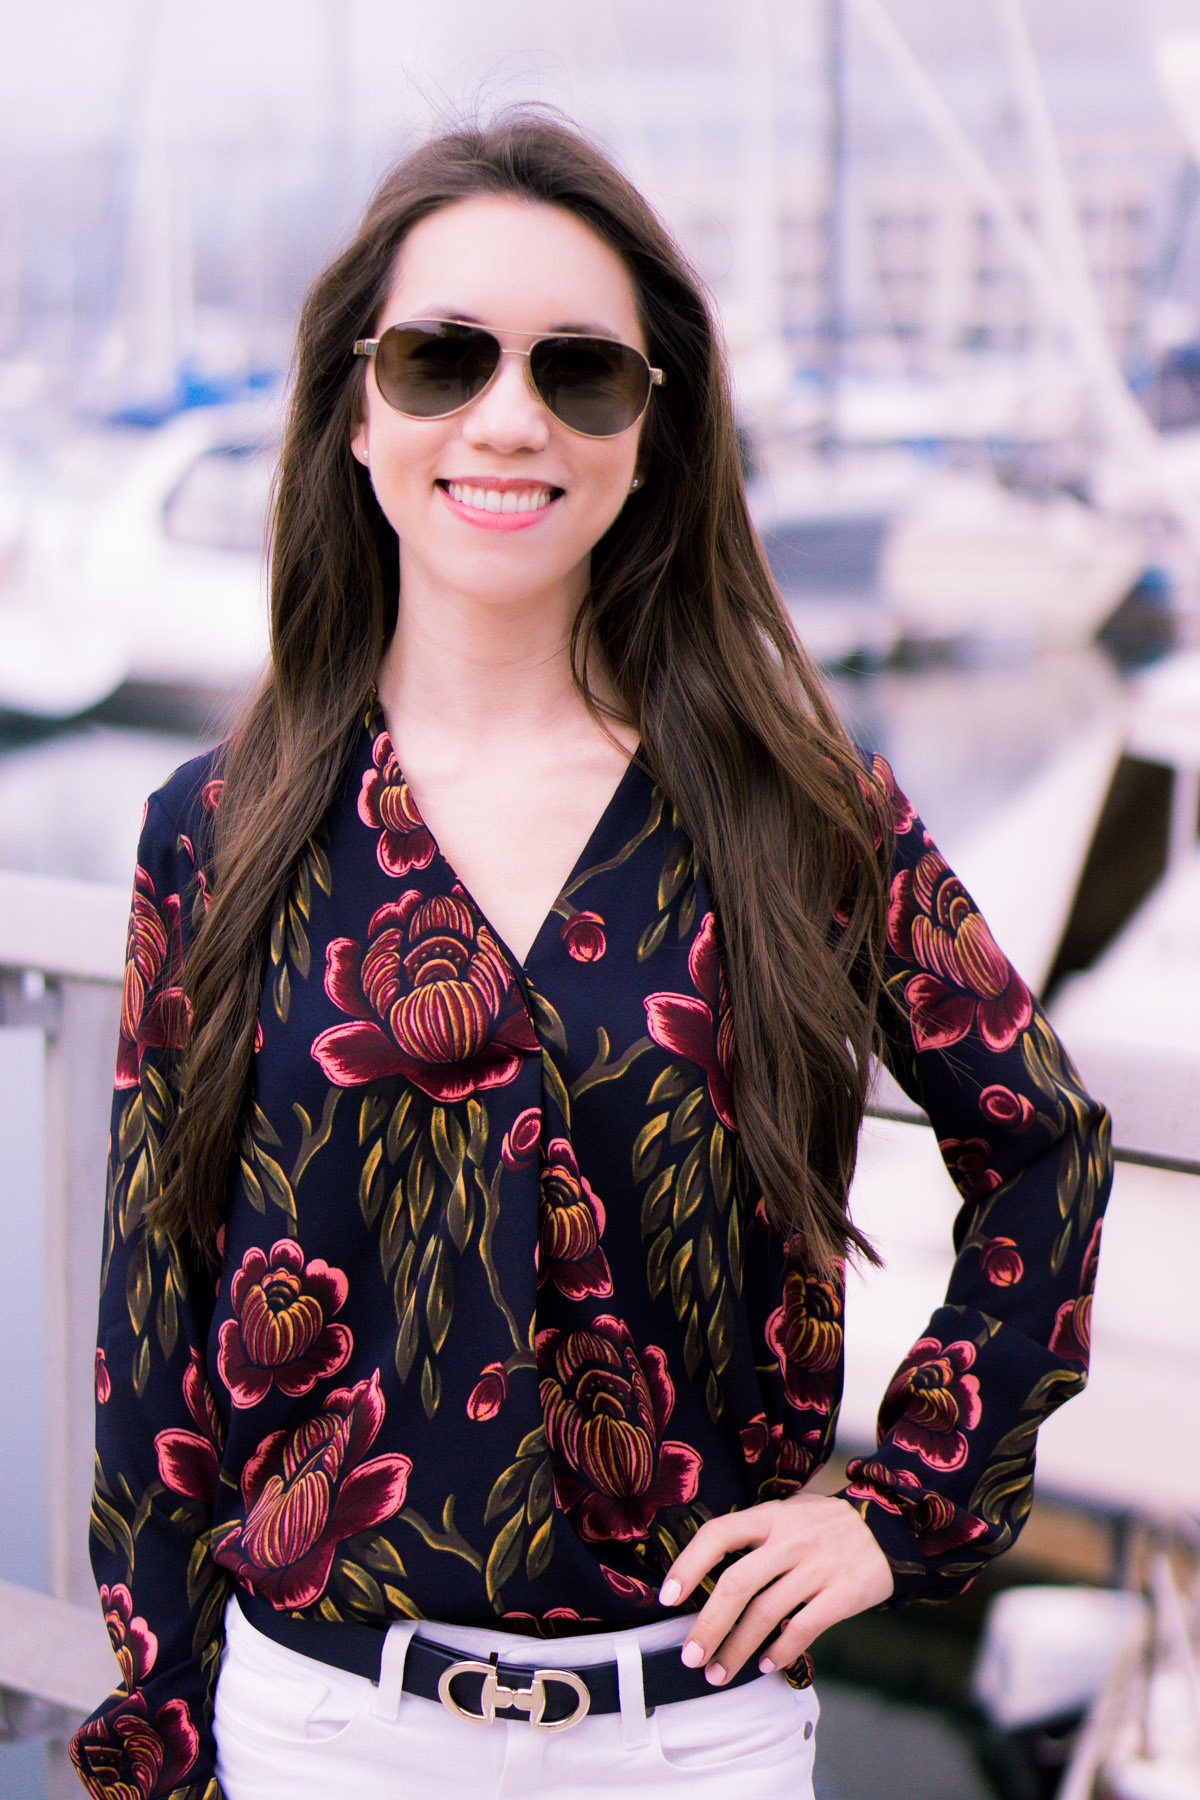 cf8083a18d43ec How to wear Spring Florals | Ann Taylor Garden Pleated Petite Blouse |  office work date